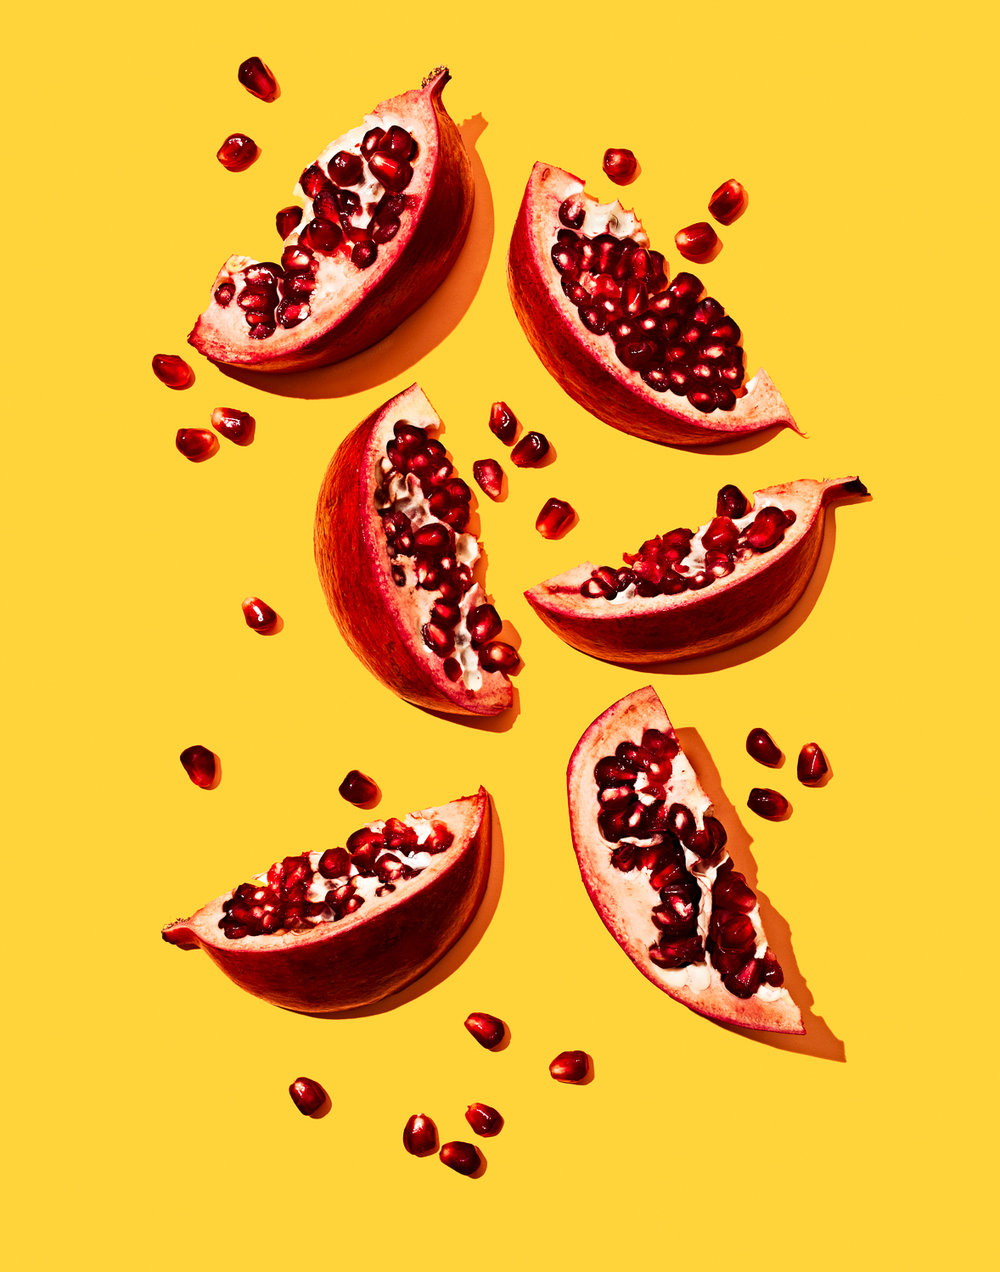 131208 Food Fruit Pomegranate.jpg